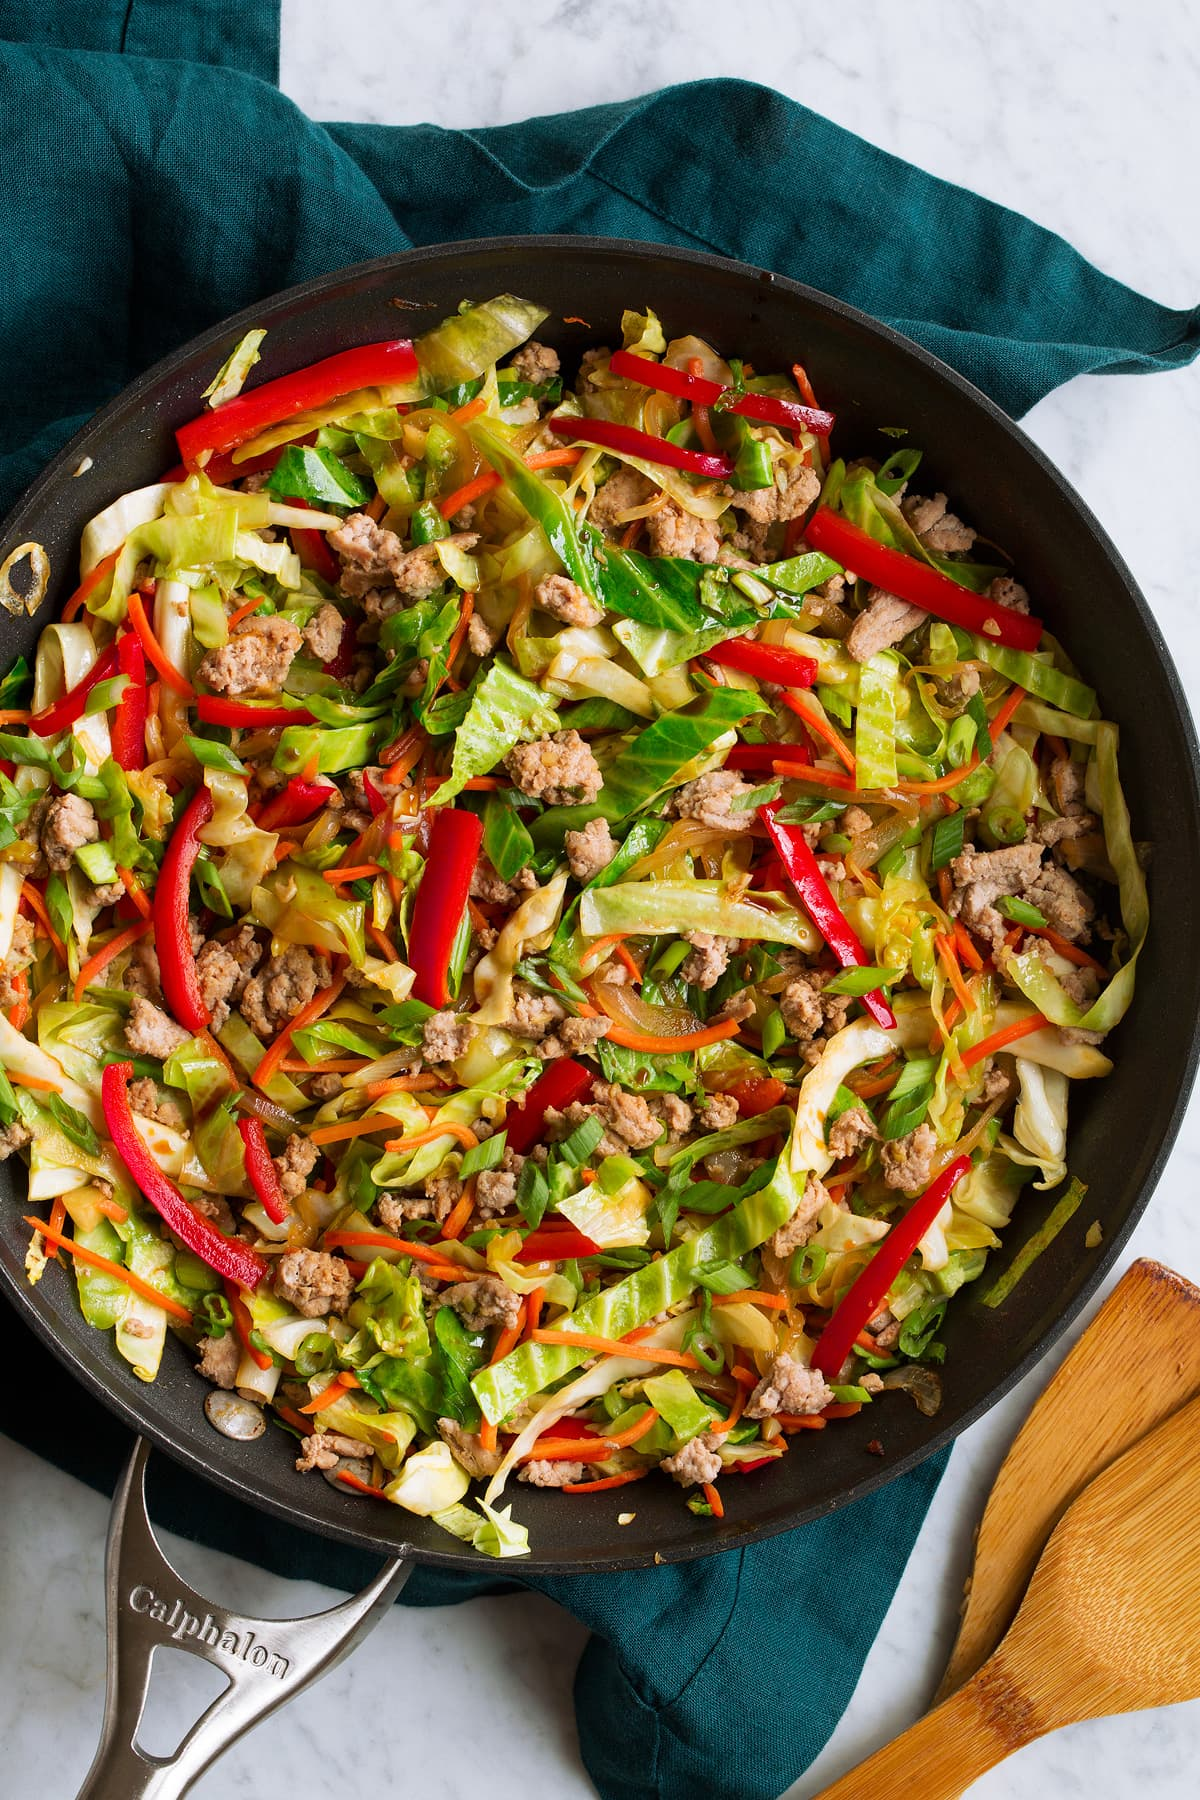 Overhead image of egg roll in a bowl in a skillet shown after completed cooking. In it you see cabbage, ground turkey, red bell pepper, and carrots.